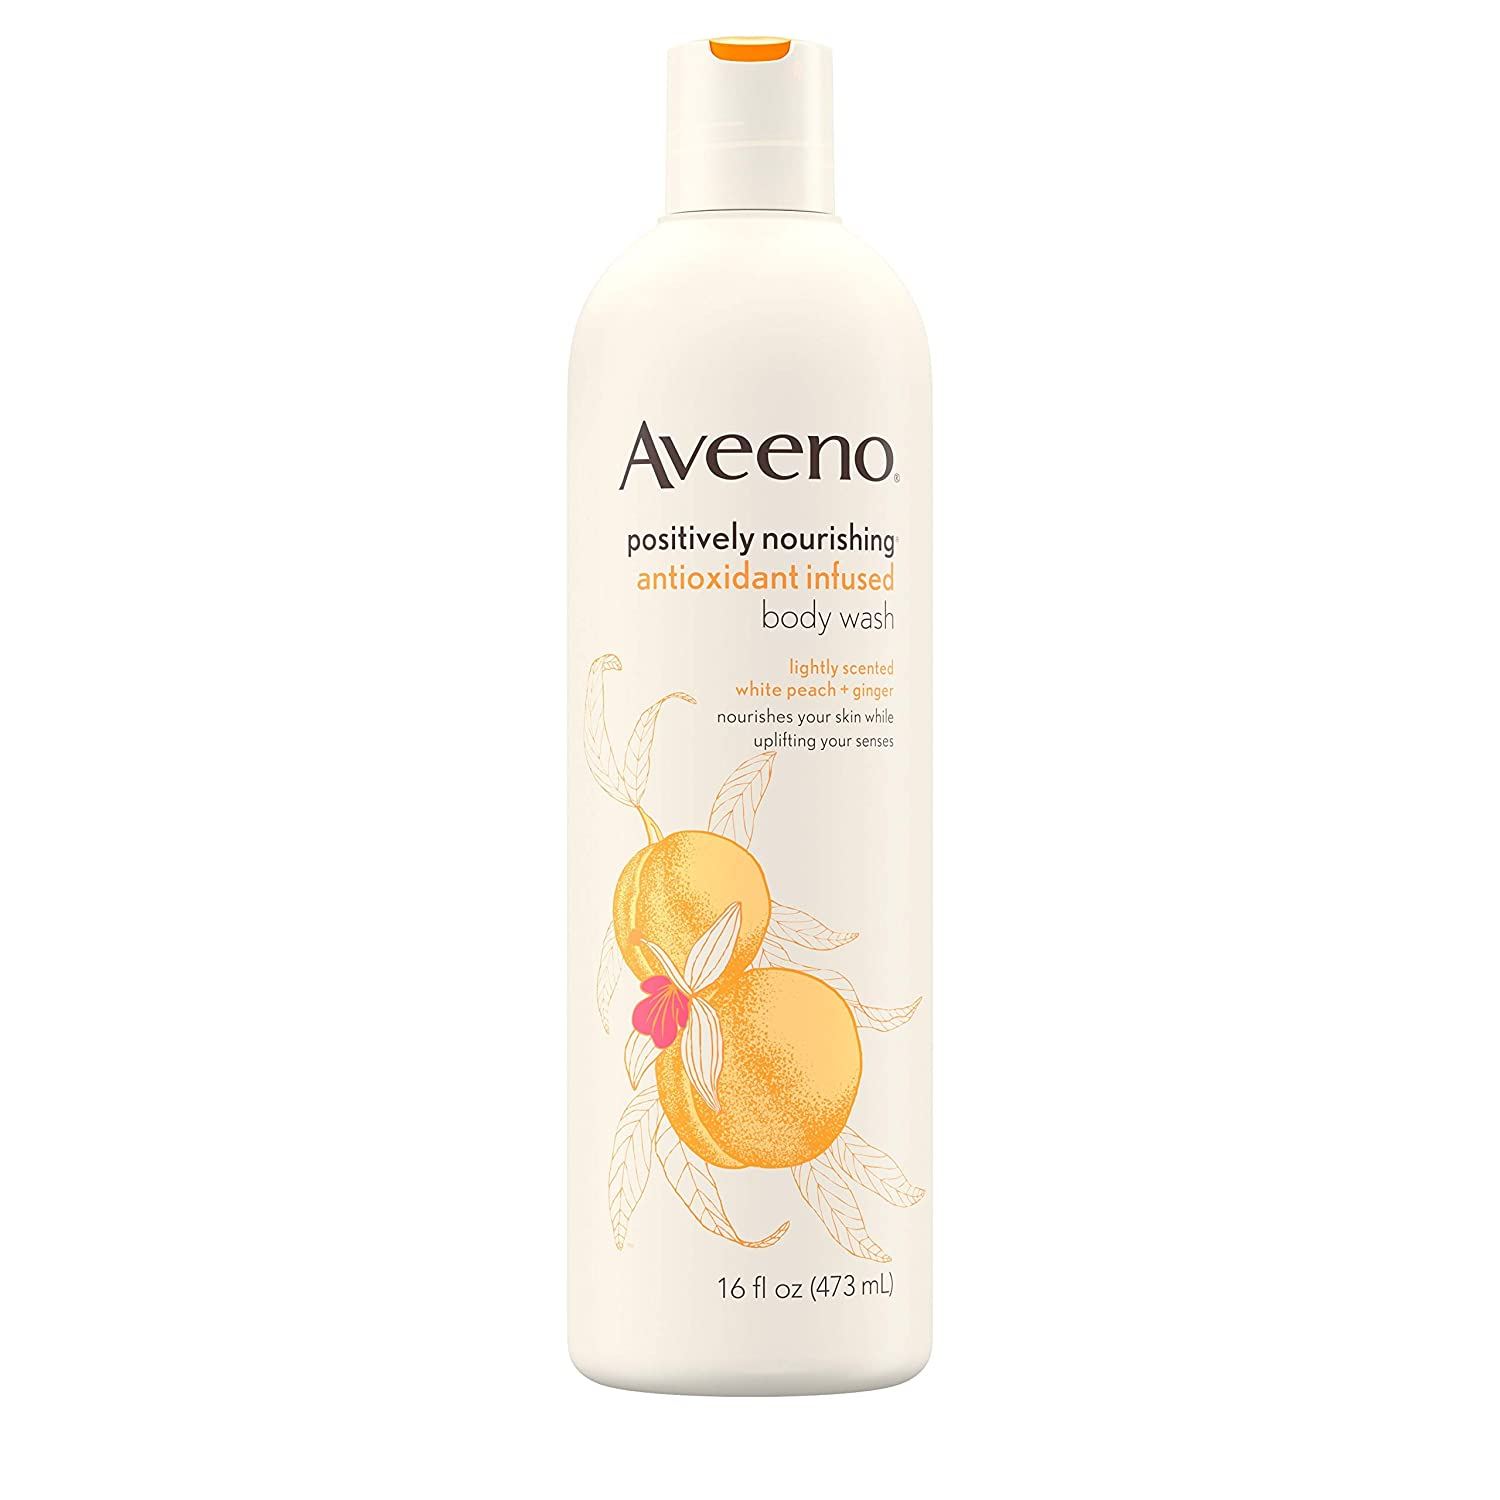 Aveeno Antioxidant Infused